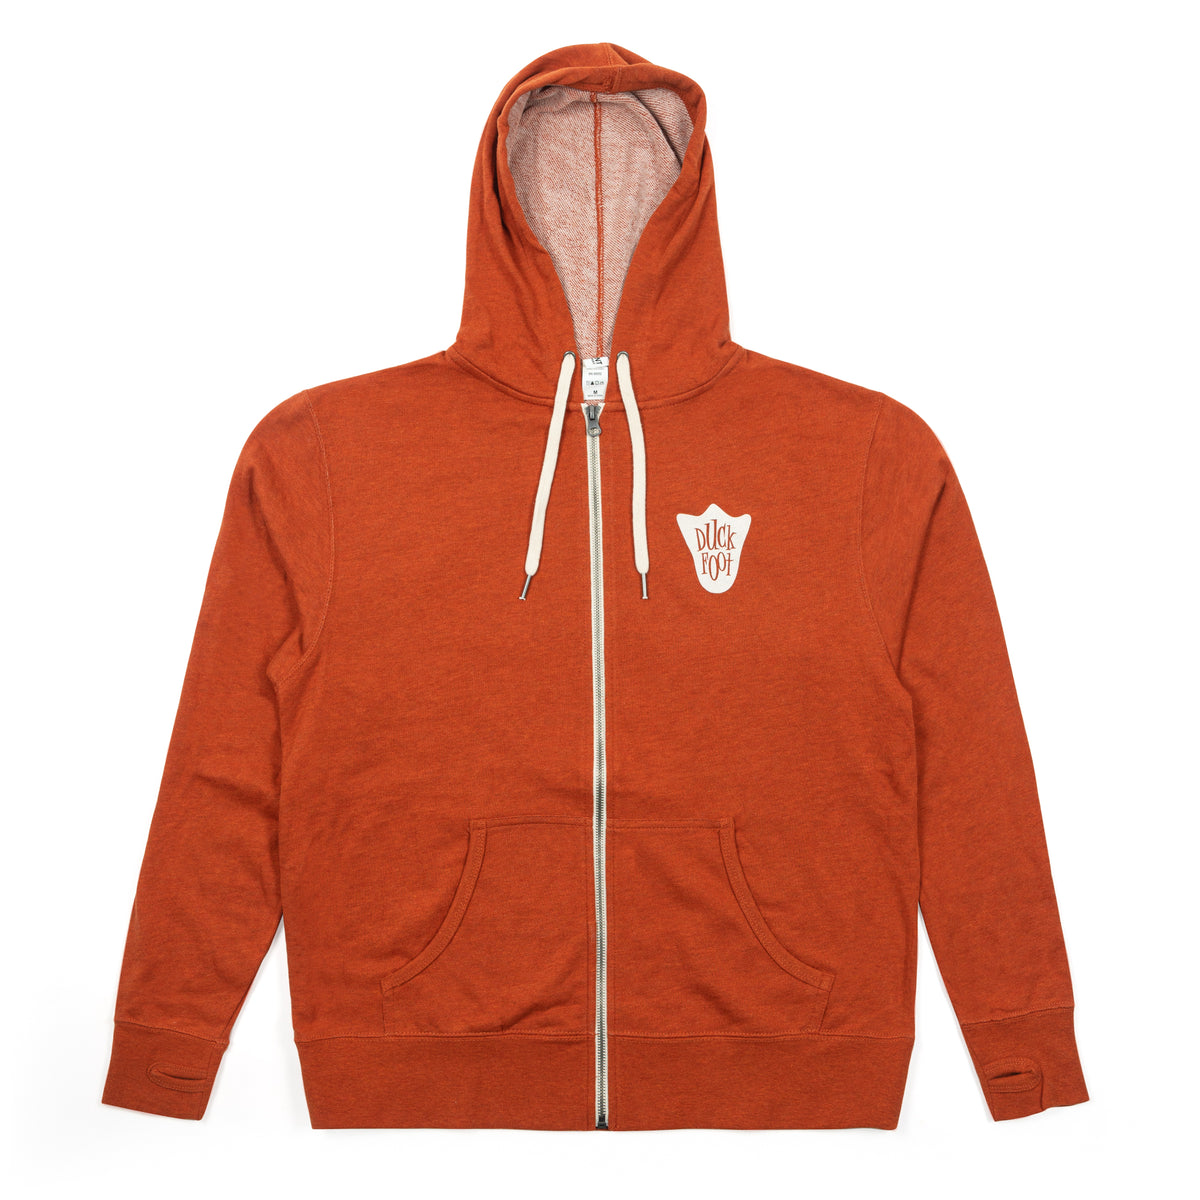 Duck Foot Hoodie (Orange)